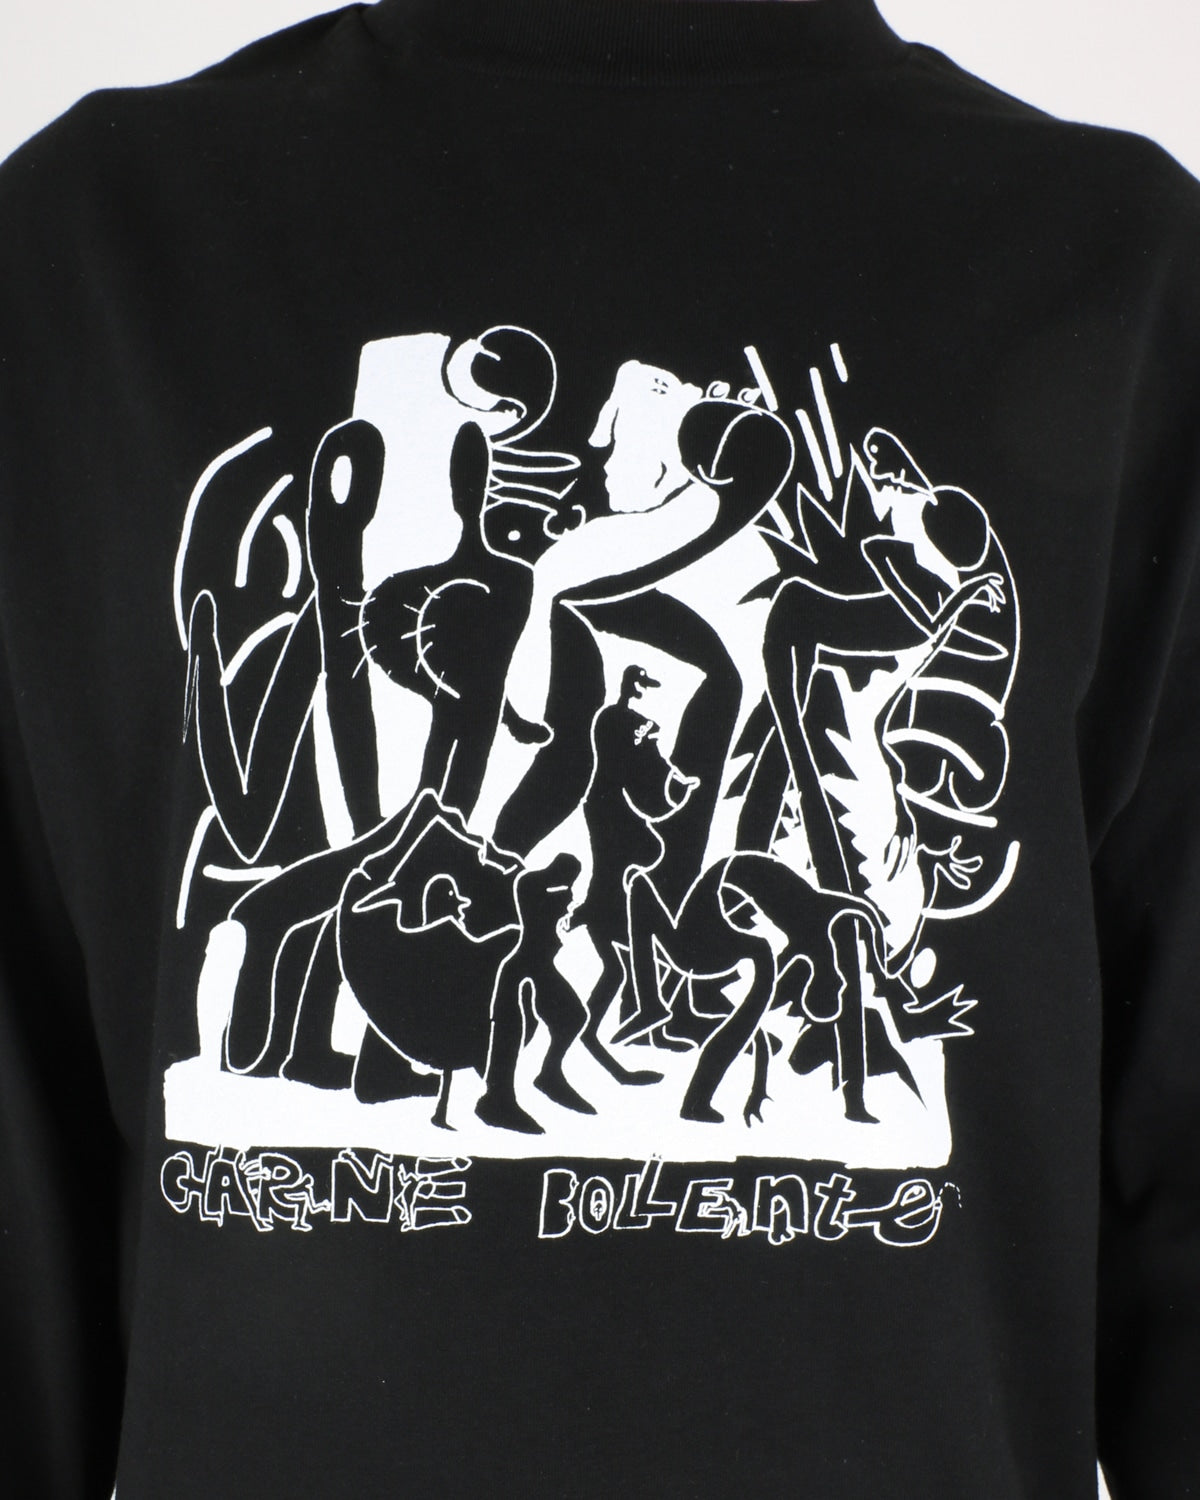 carne bollente_chicken wings of desire longsleeve_black_4_5